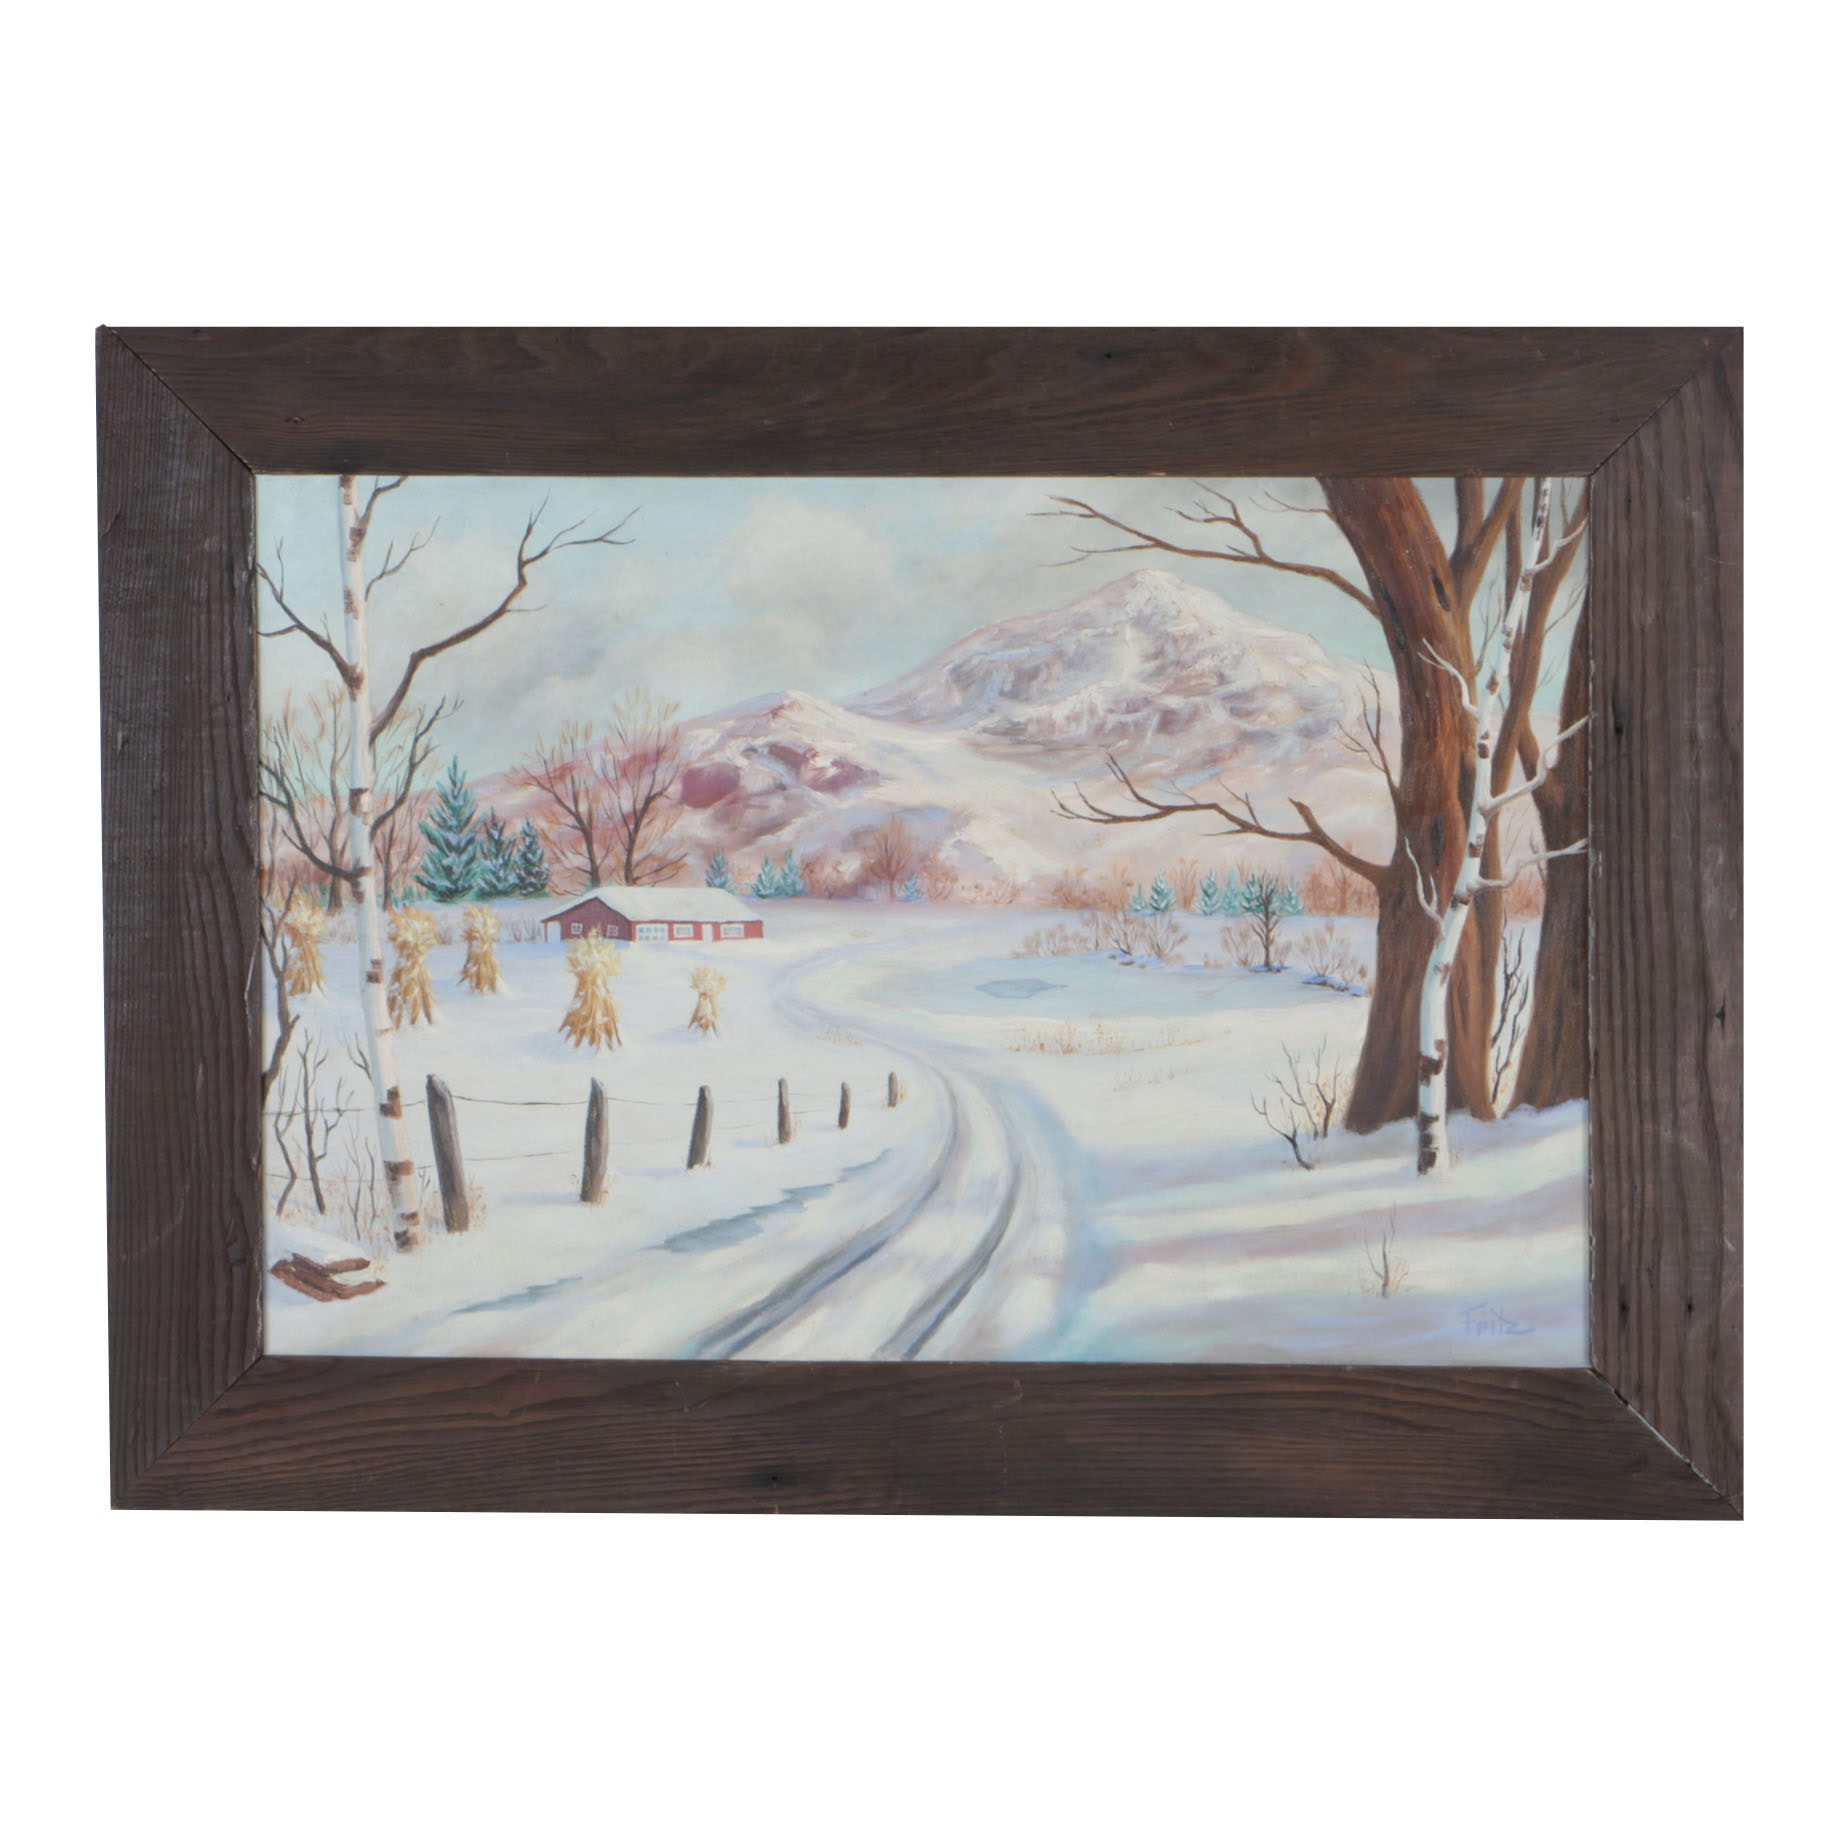 Fritz Oil Painting of a Winter Landscape